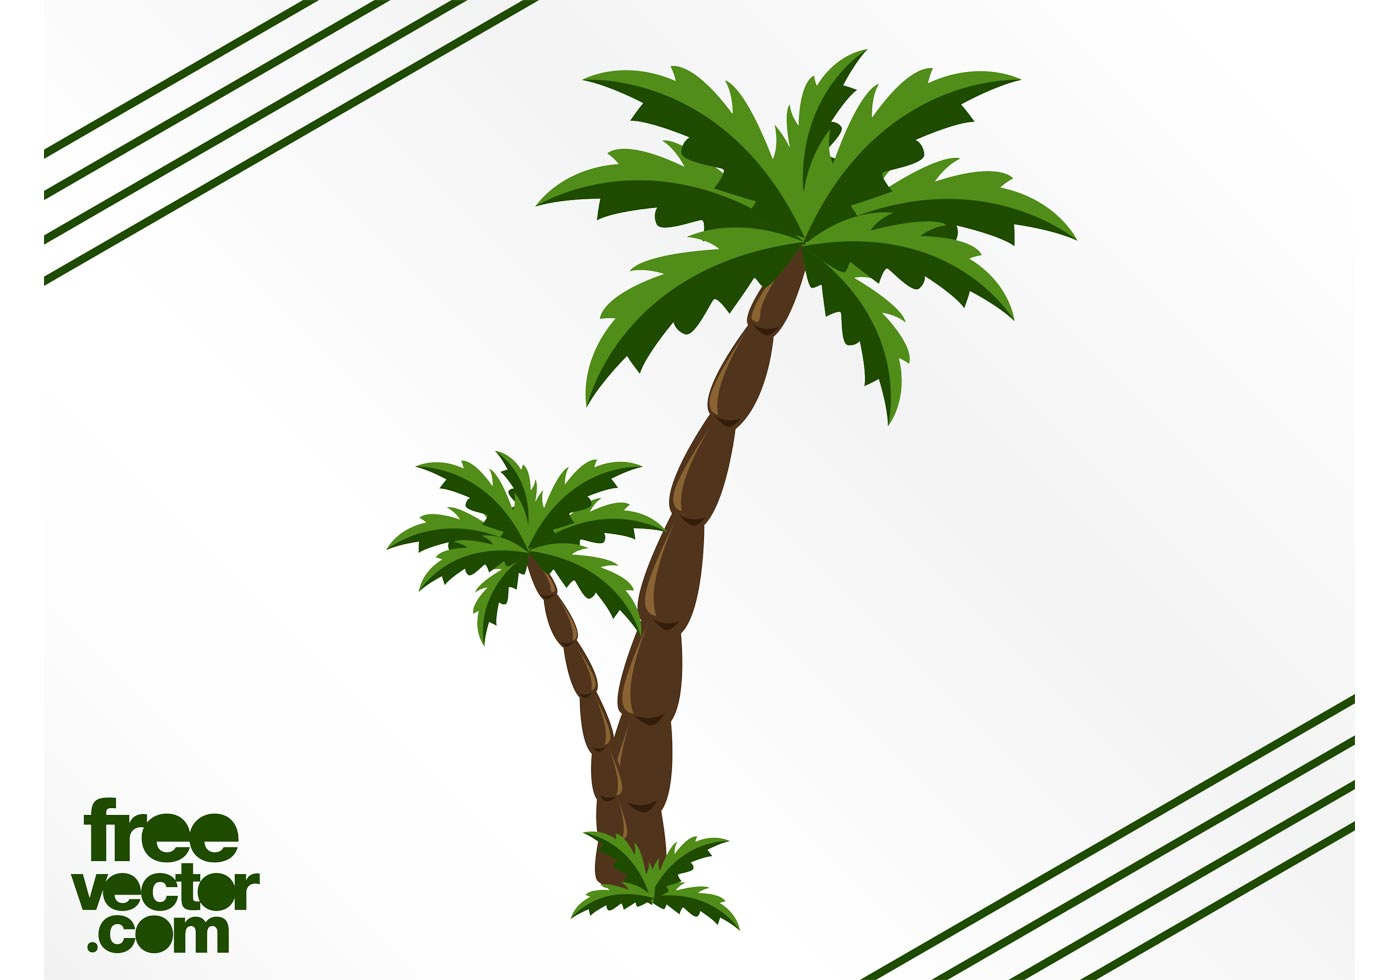 Palm Trees Graphics - Download Free Vector Art, Stock ... - photo#42